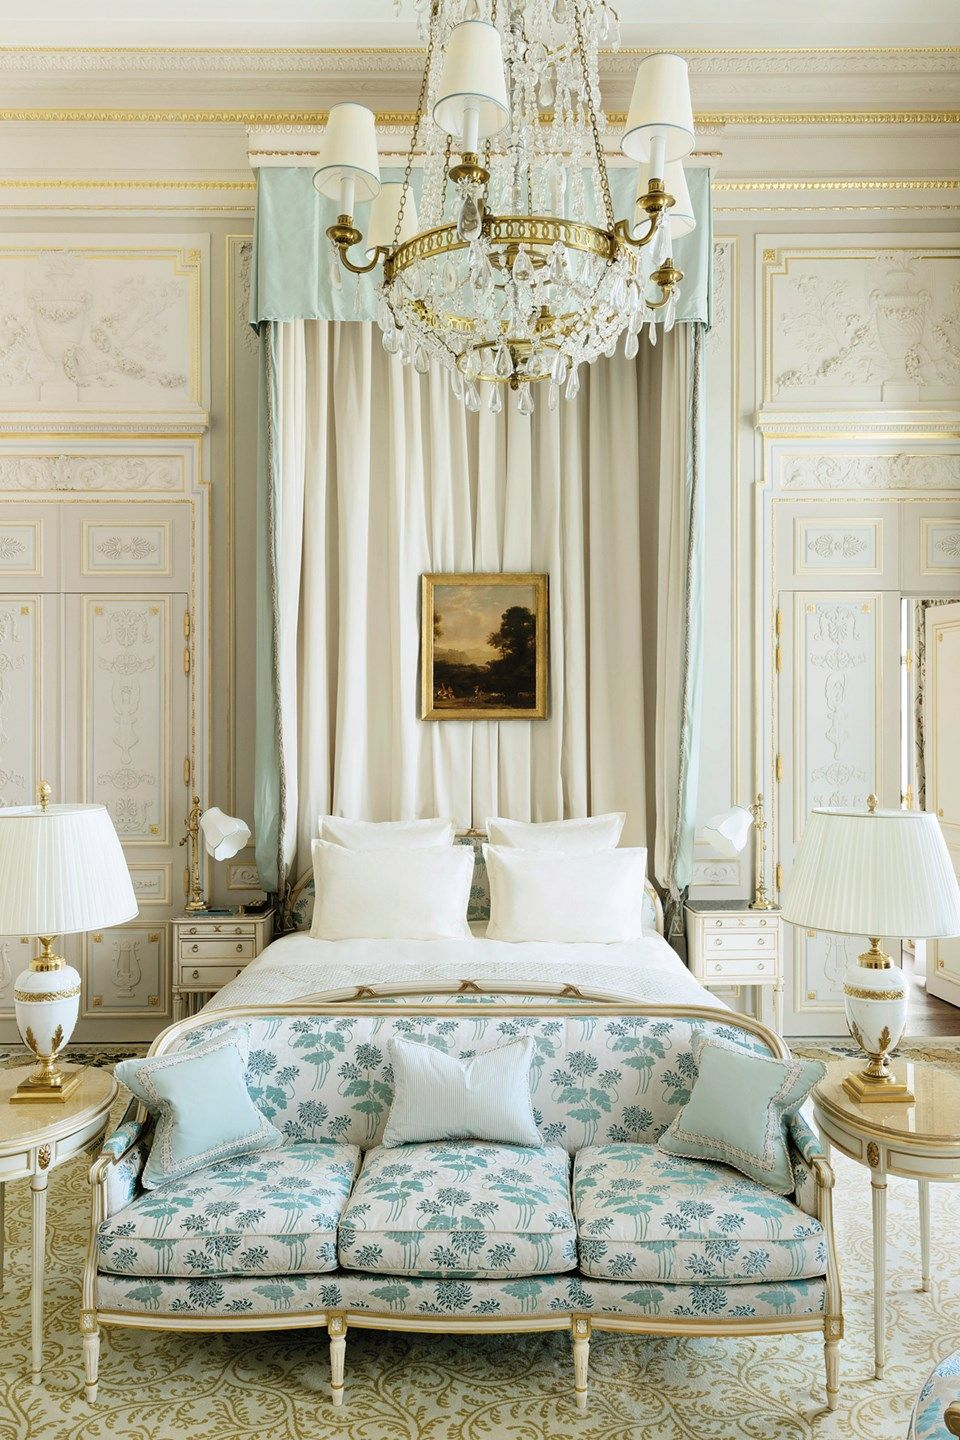 The Windsor Suite At The Ritz Paris